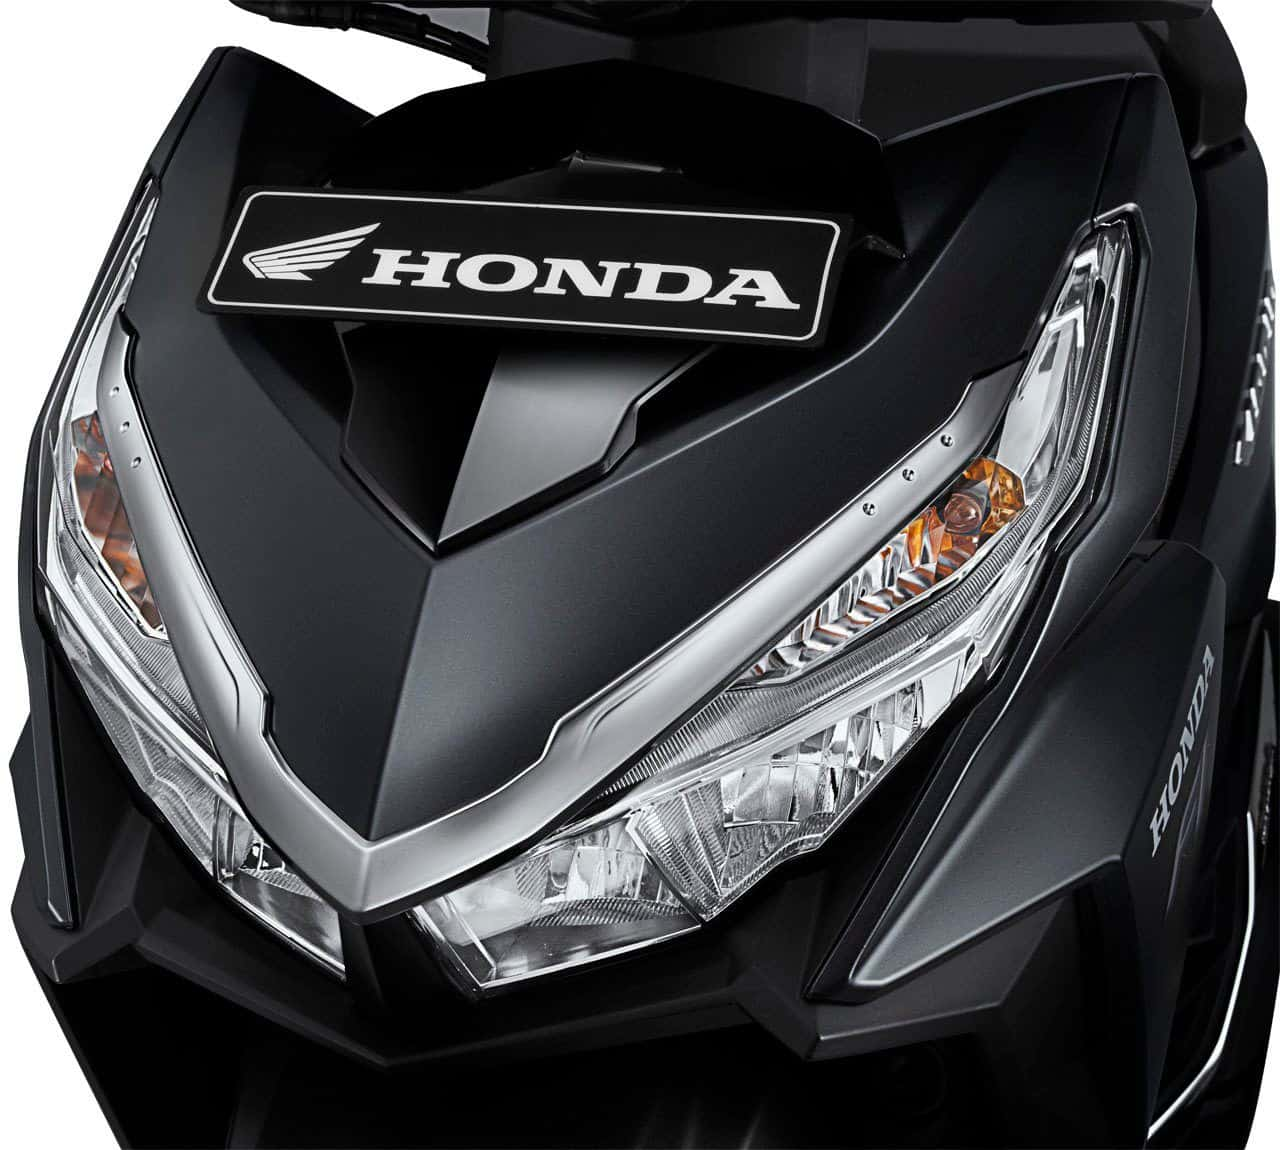 Headlight Garnish - Aksesoris Honda Vario eSP